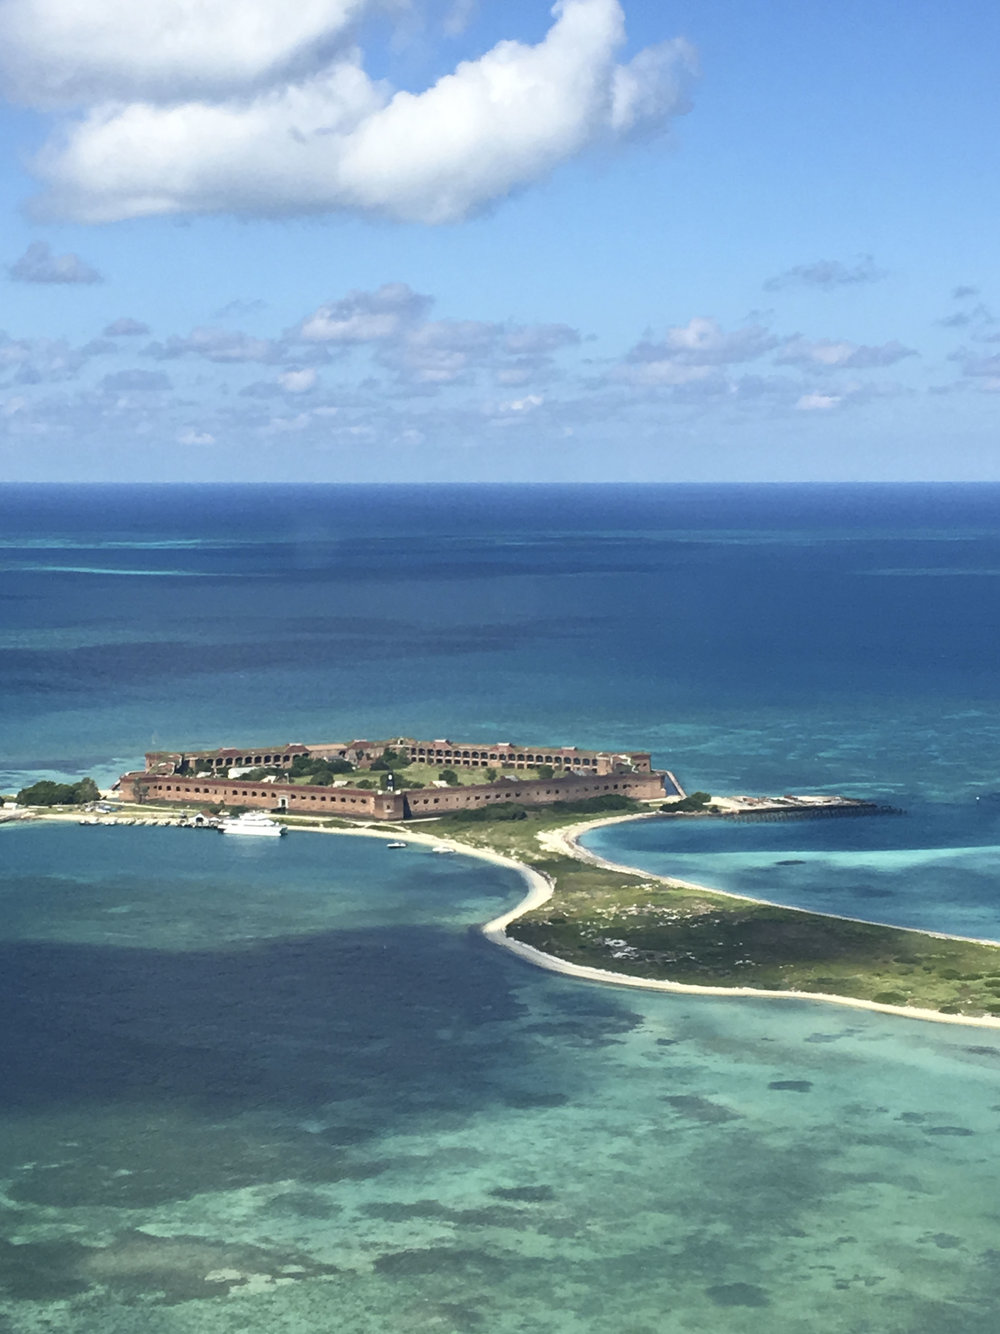 Views of Fort Jefferson from the air